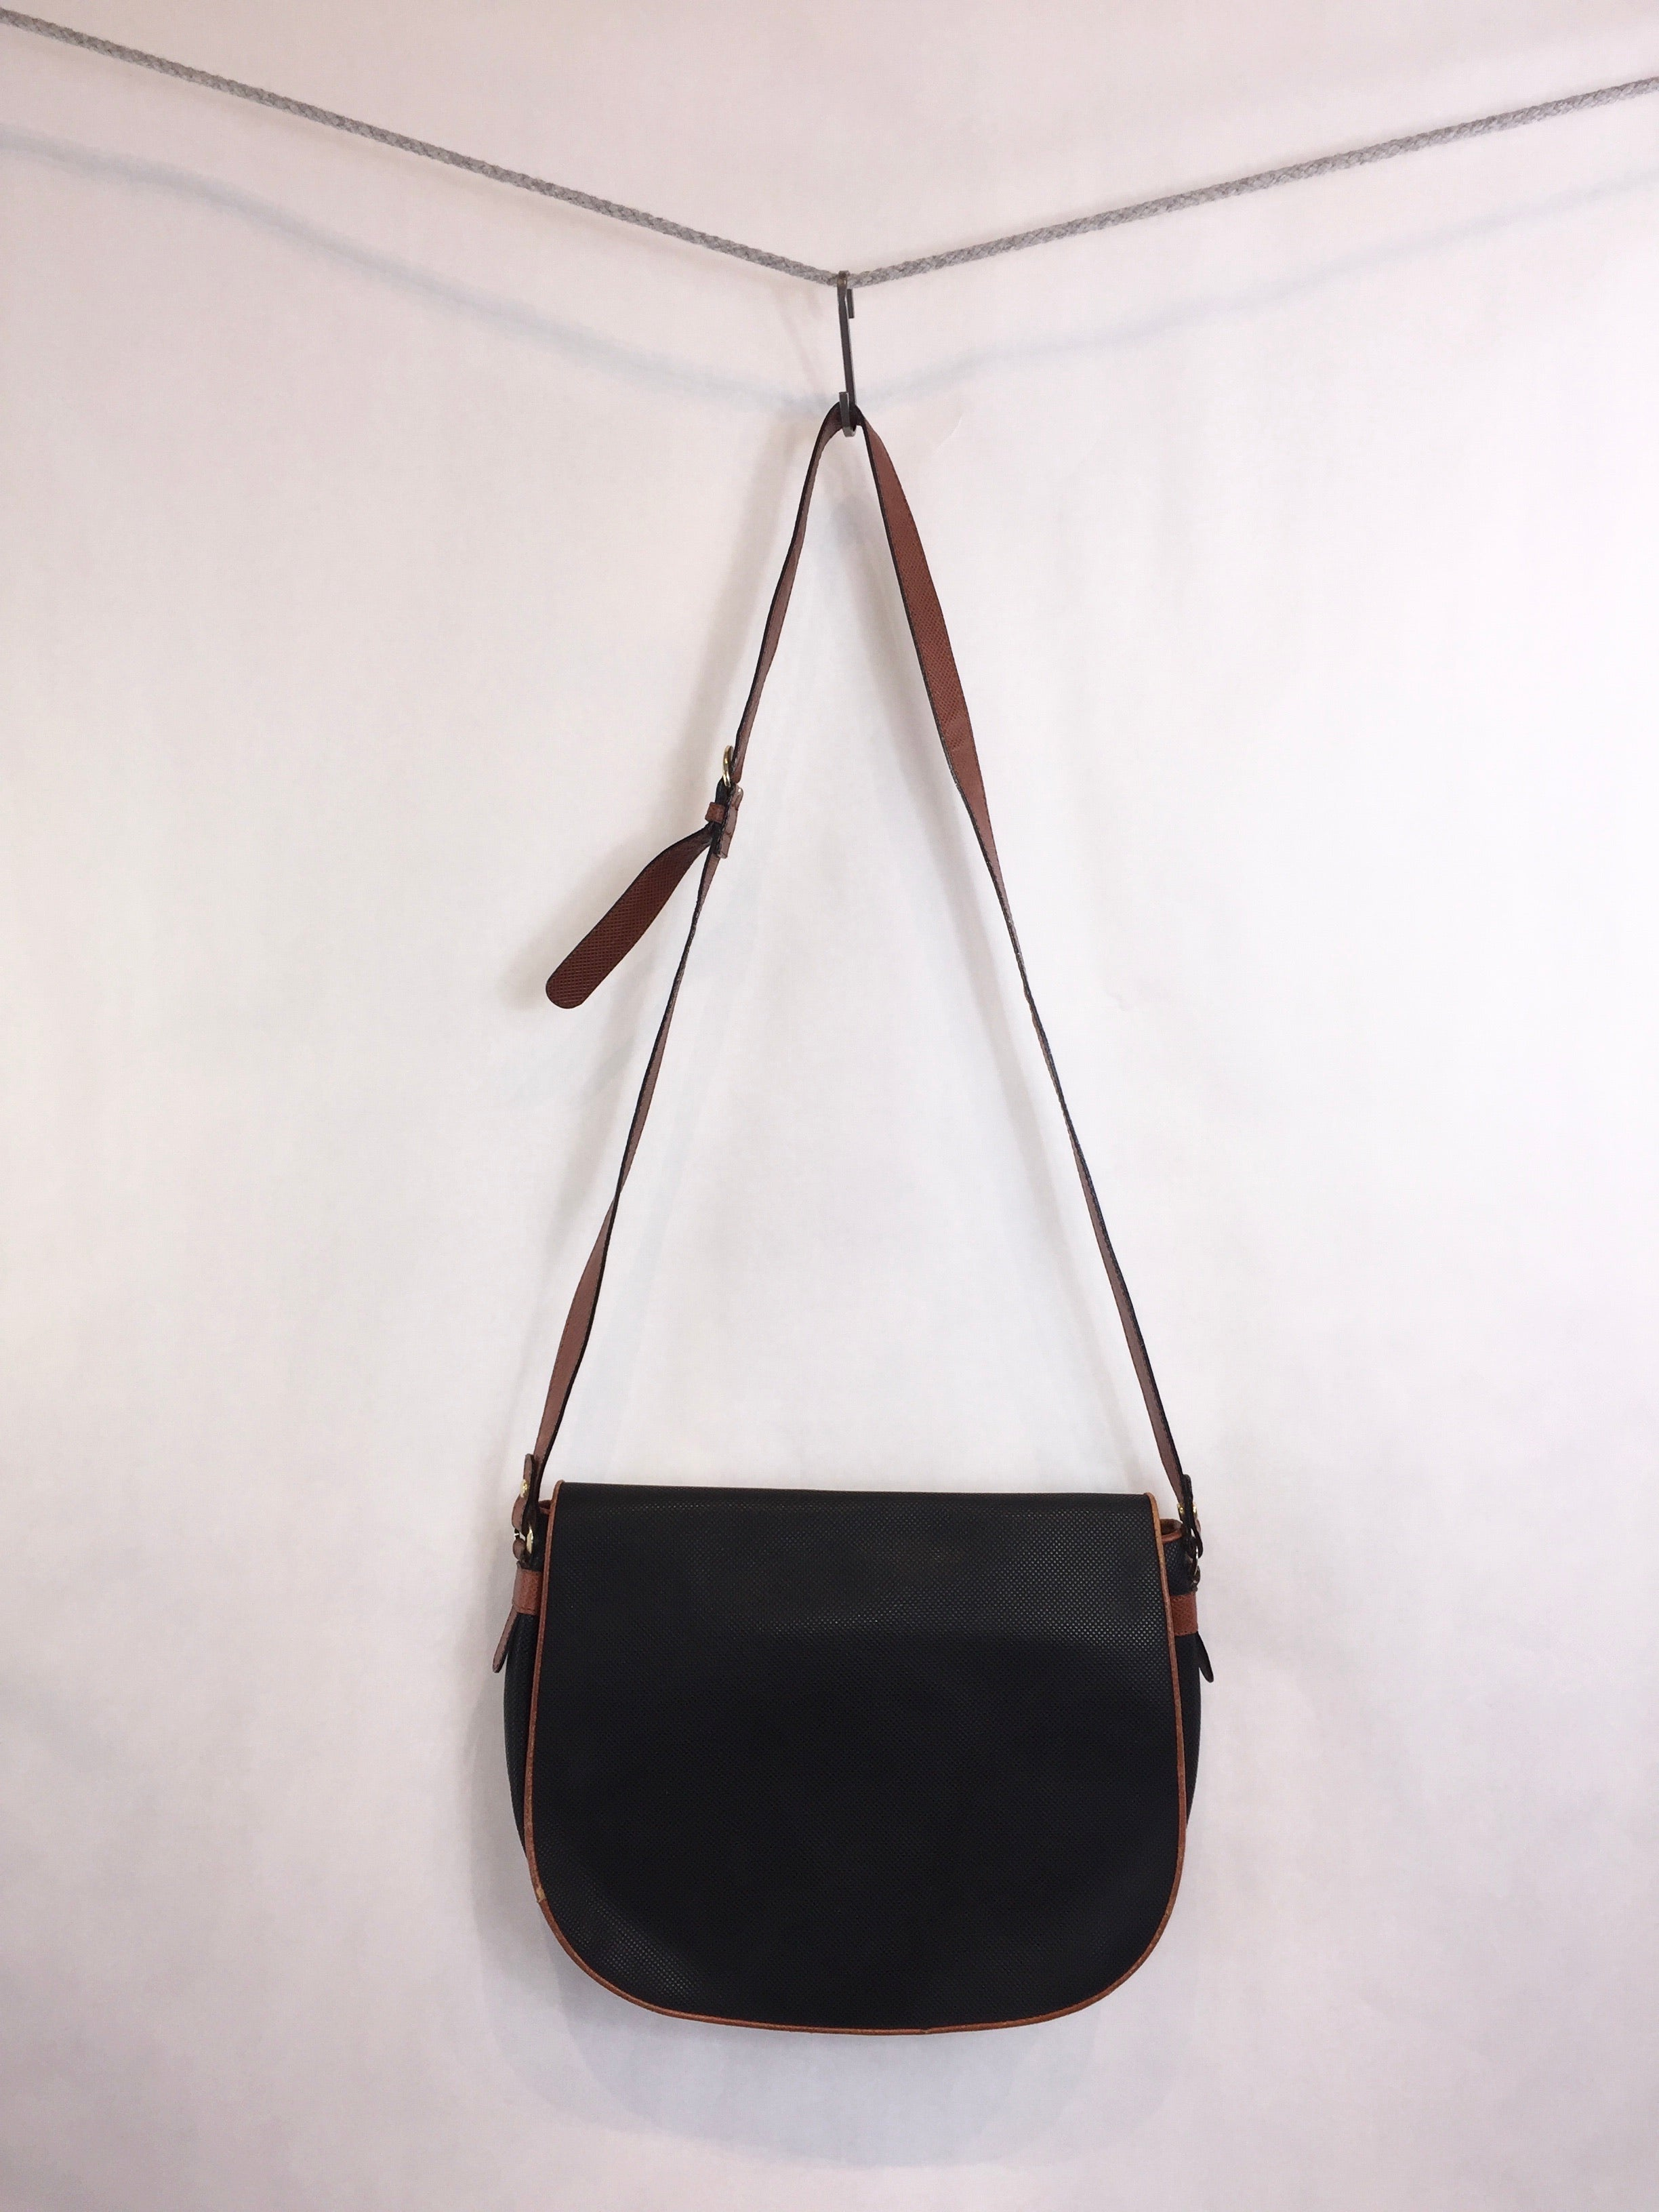 'Marco Polo' Collection Handbag